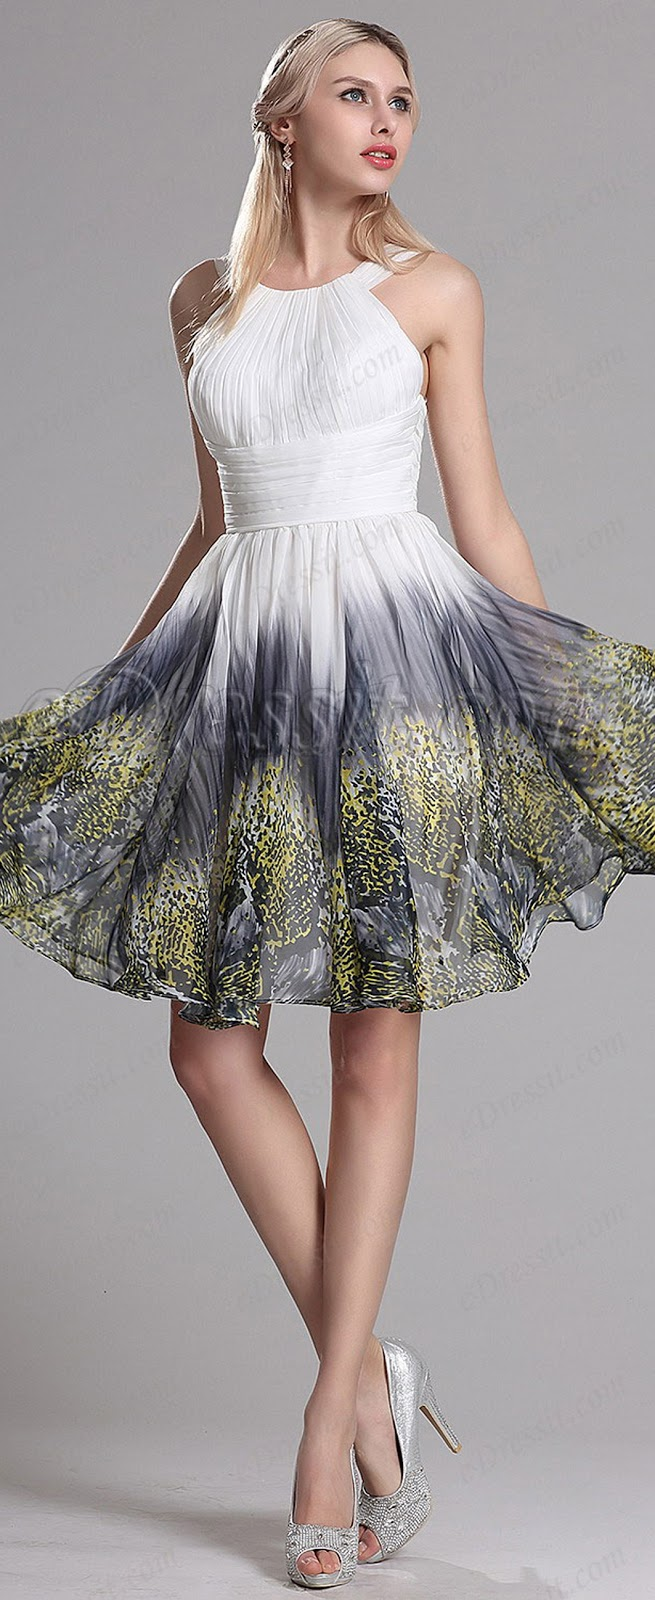 http://www.edressit.com/halter-straps-printed-cocktail-party-dress-x07152003-_p4677.html